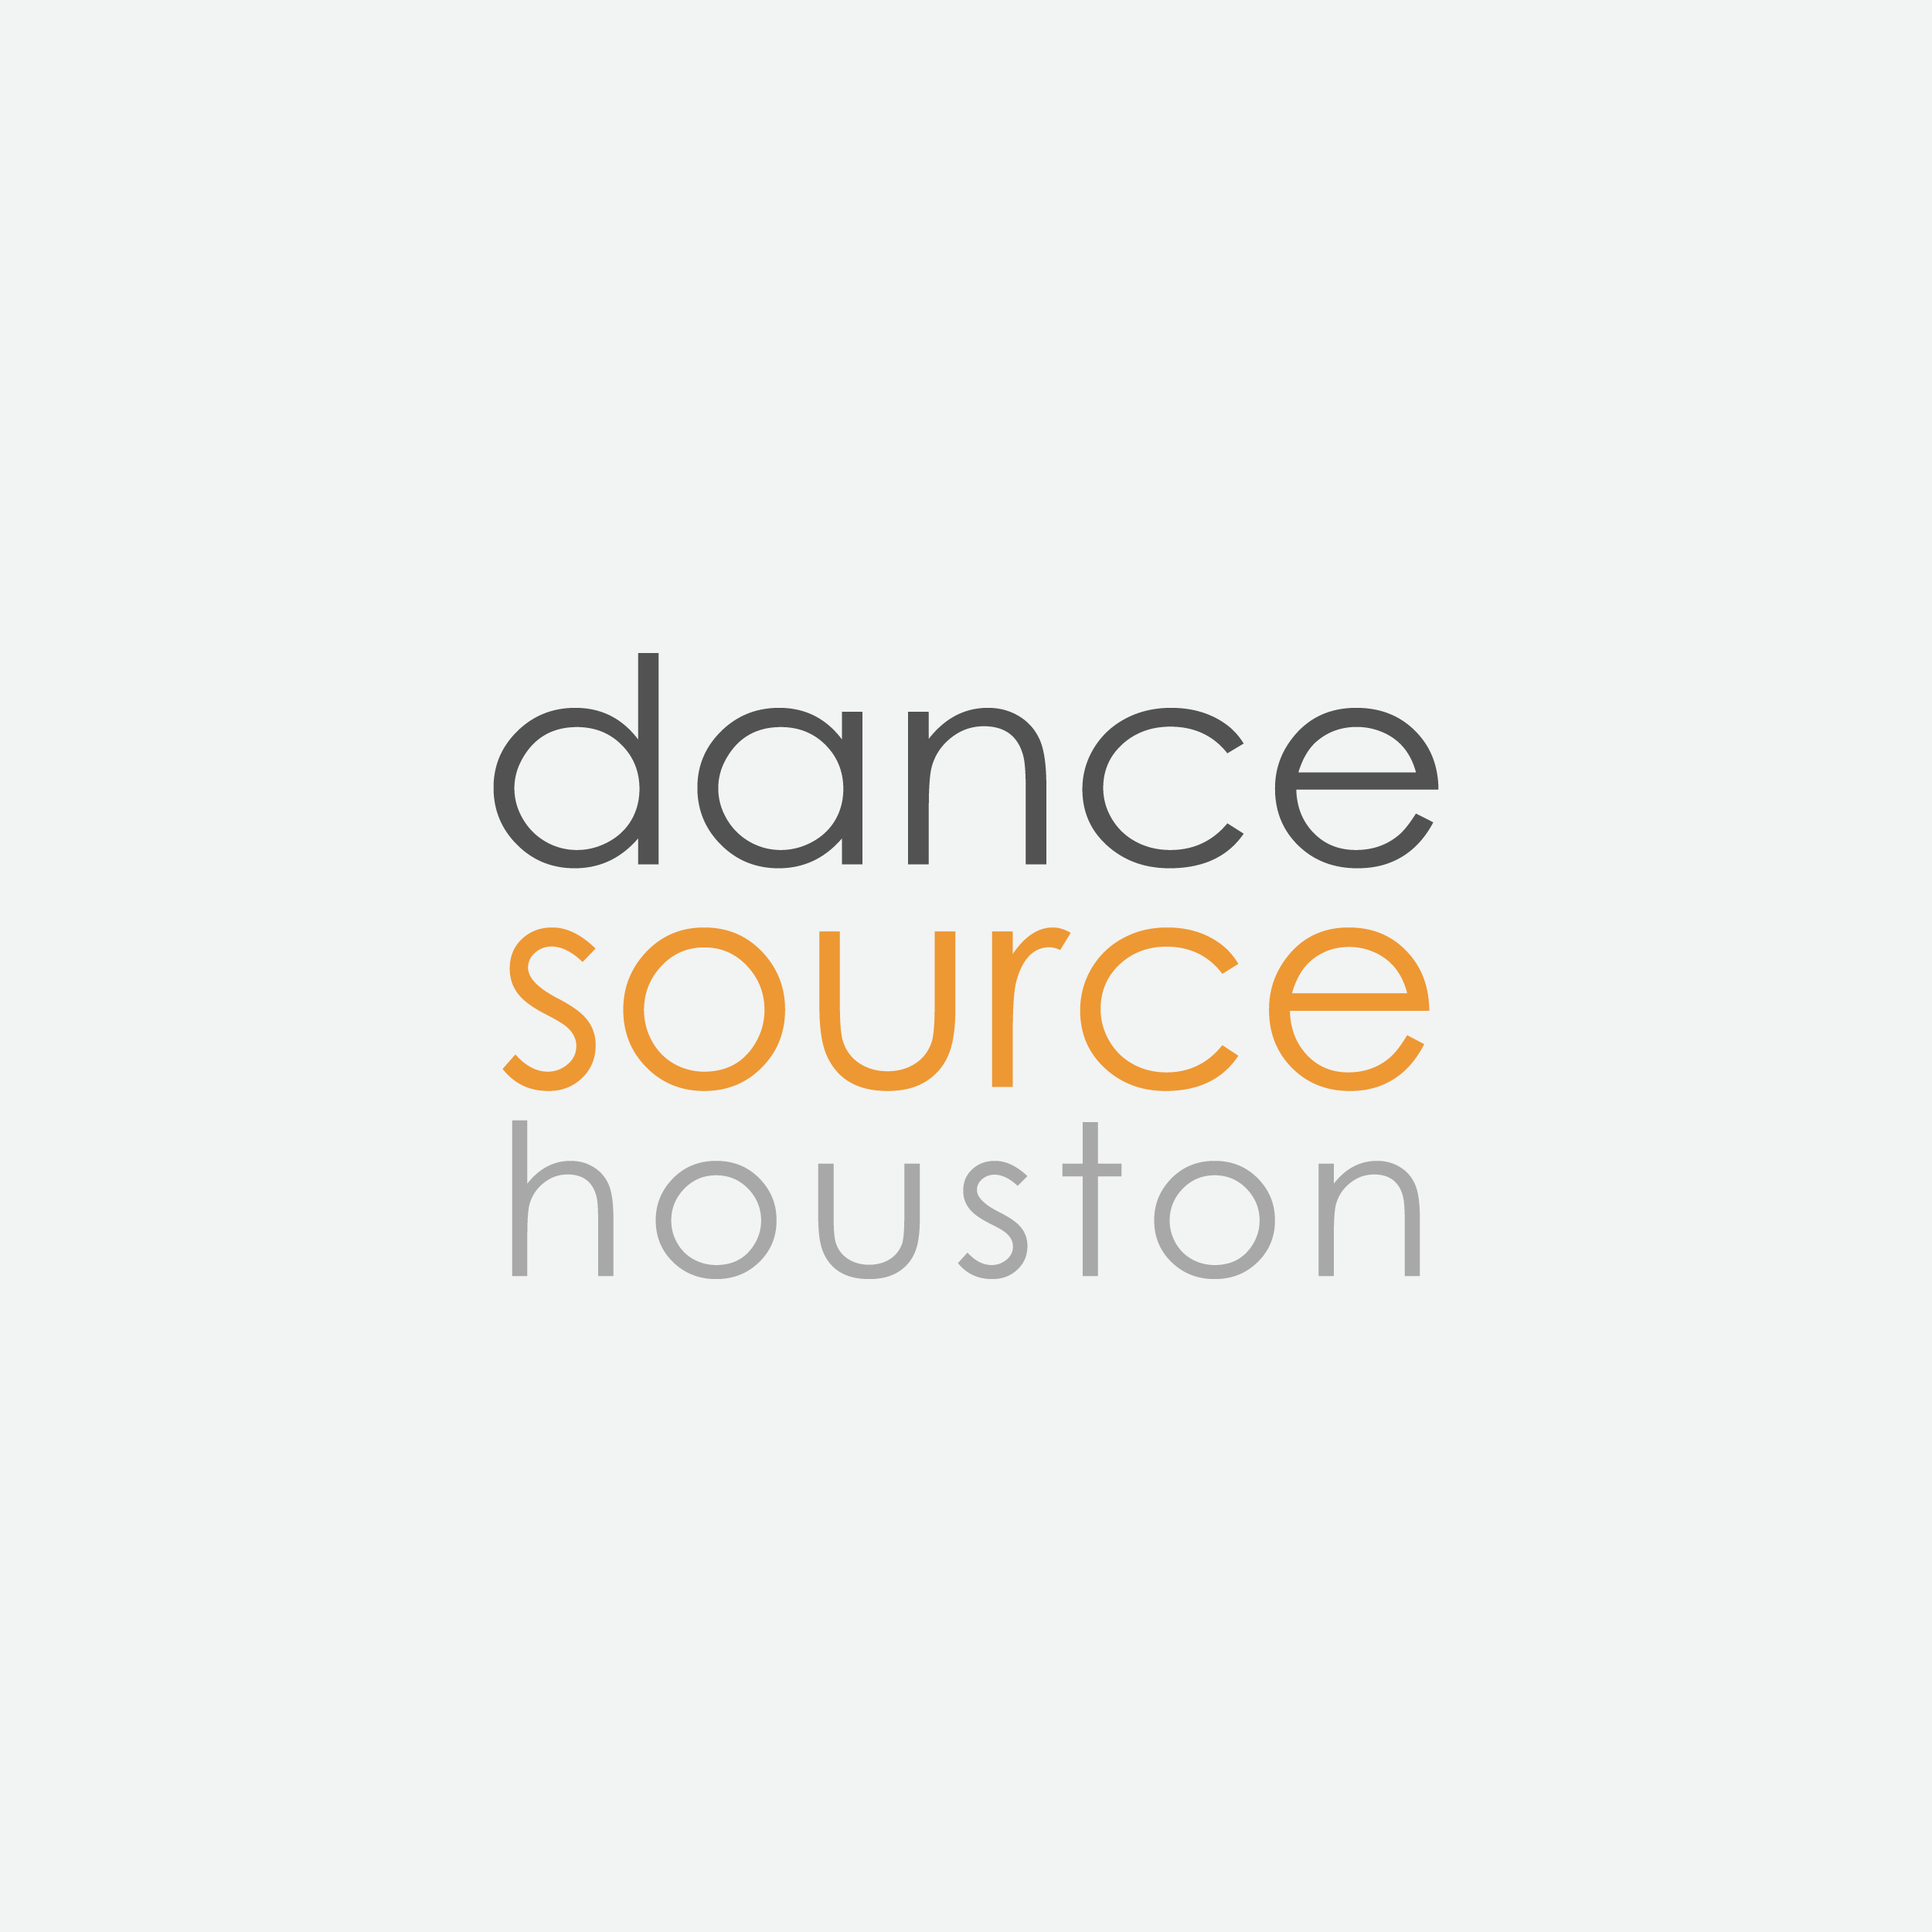 Dance Source Houston